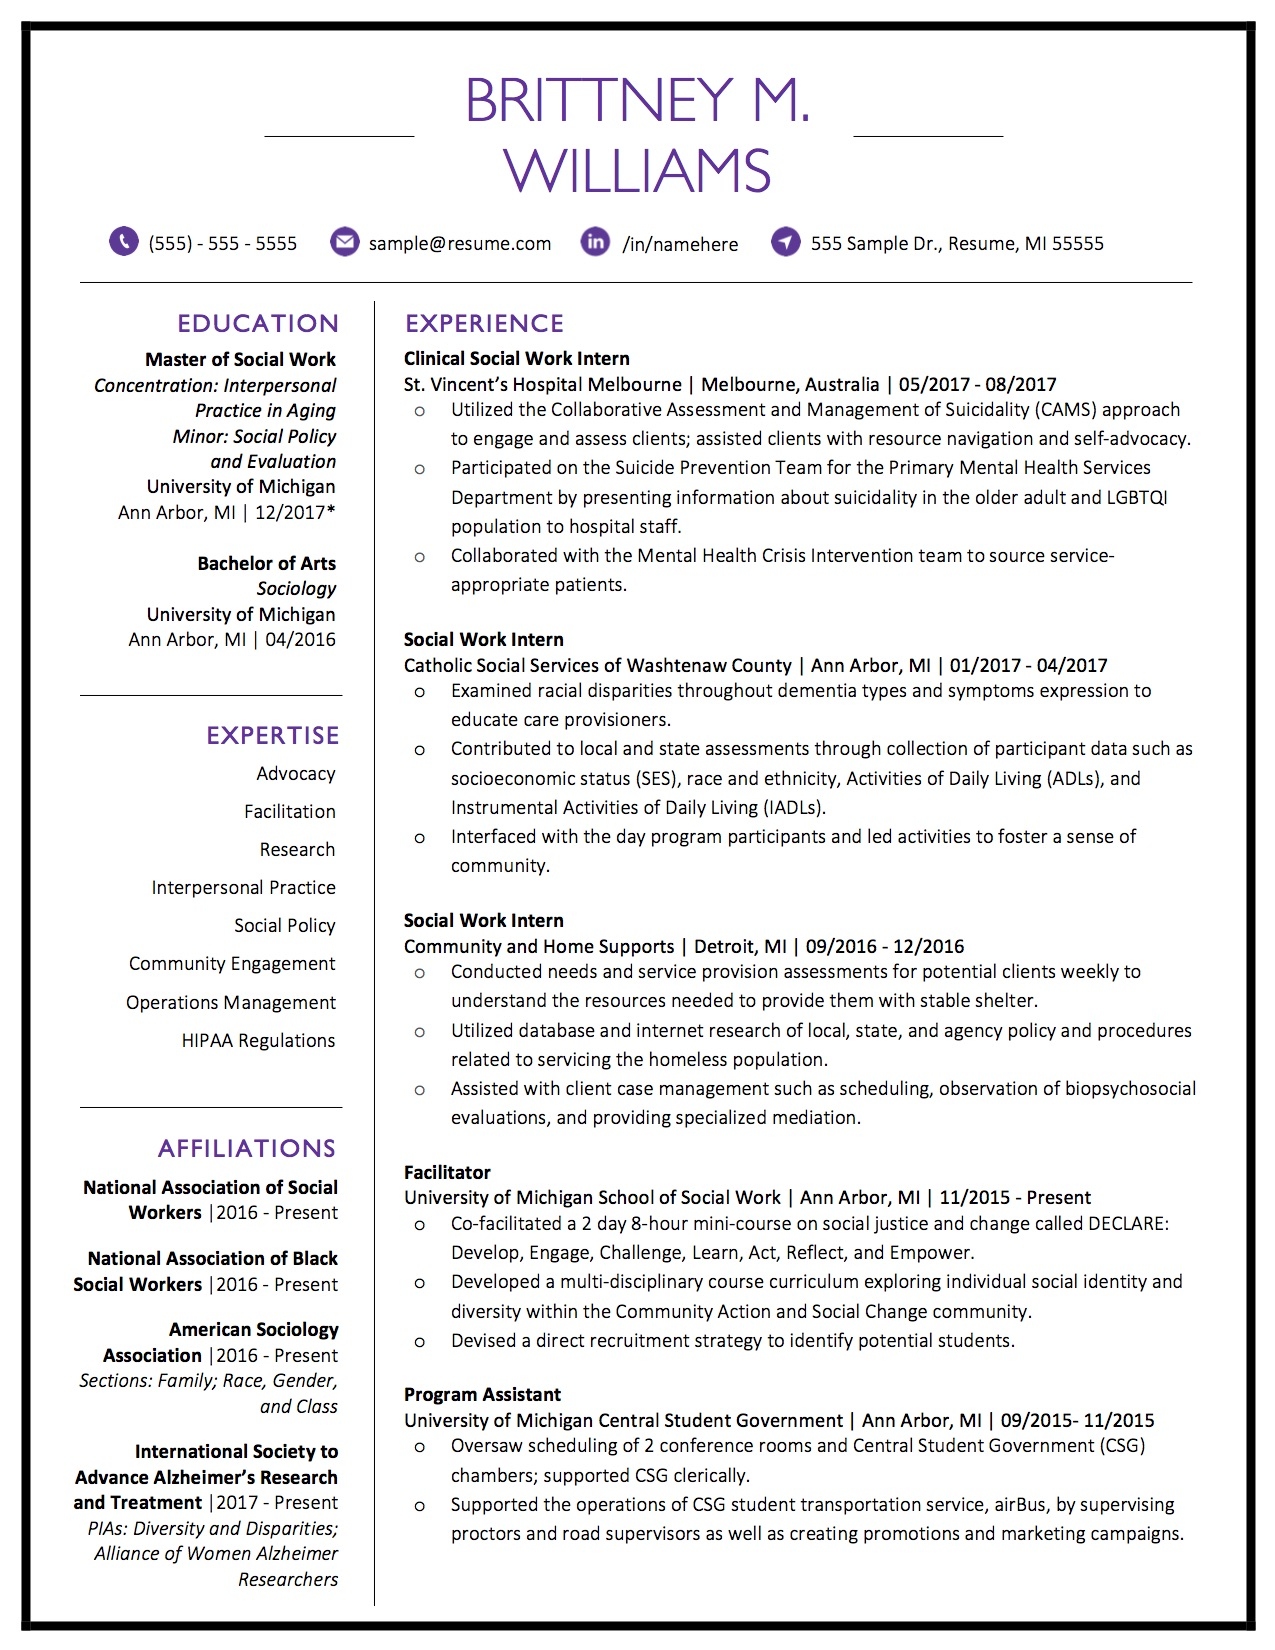 Client Resume #19 pg 1. Click to enlarge.